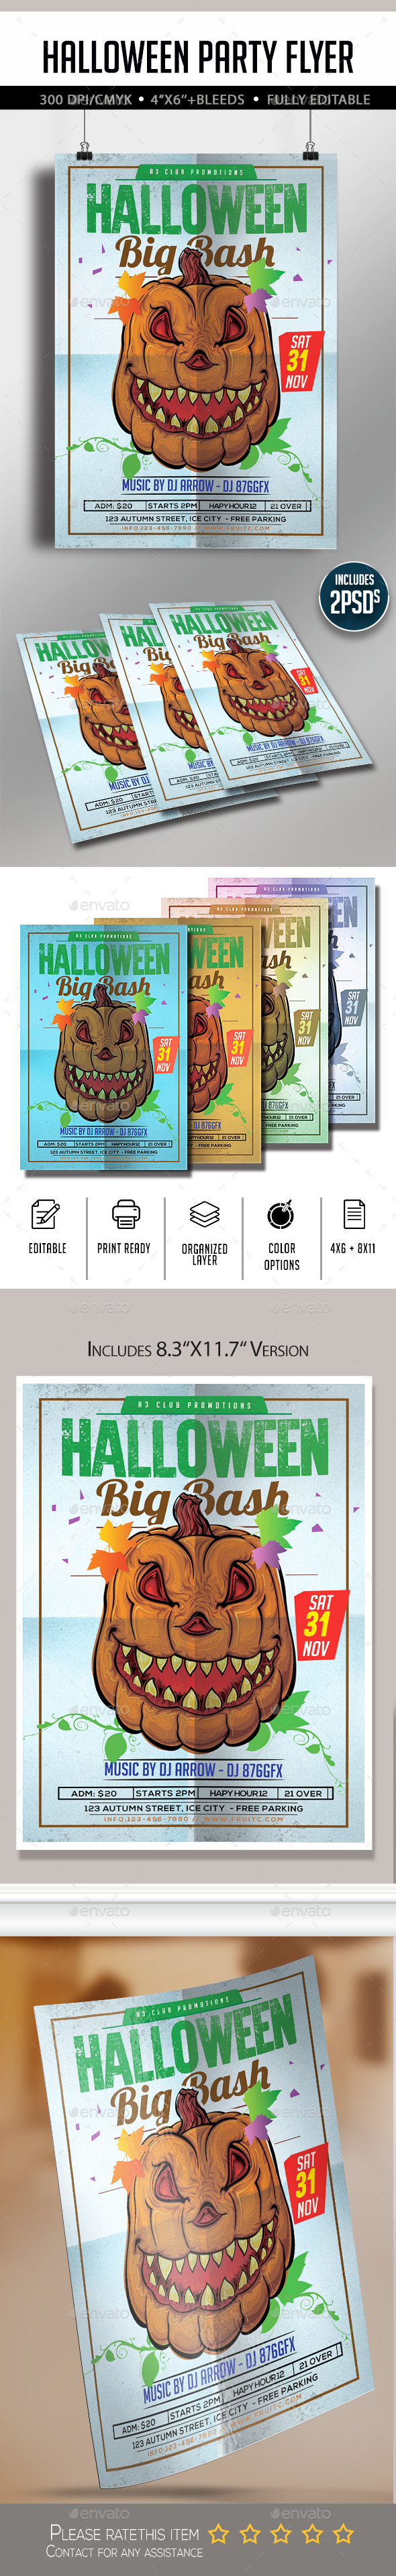 Halloween Flyer A4 - Flyers Print Templates